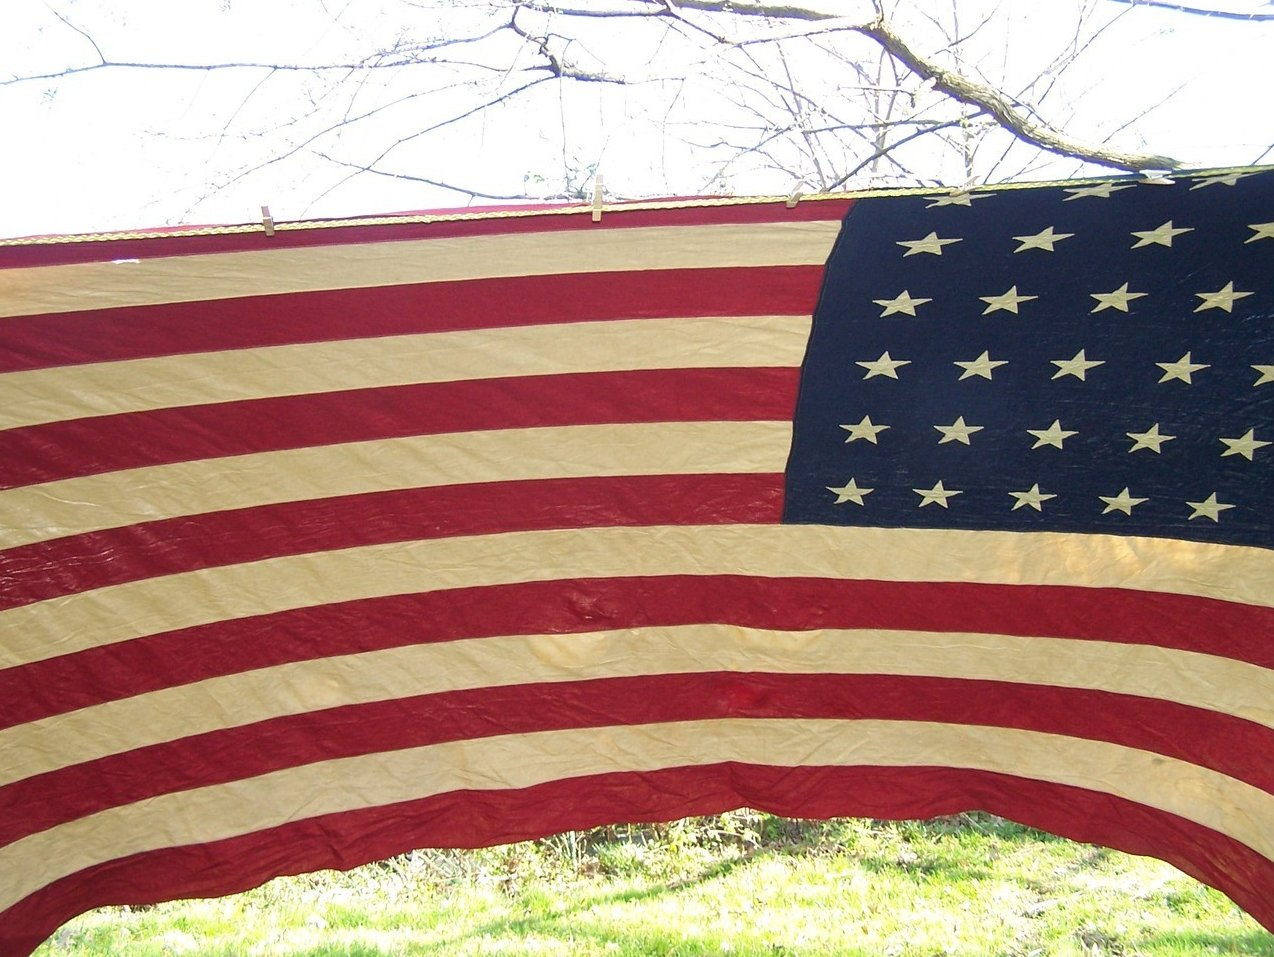 Image 4 of WWII Era 48 Star American Flag Sewn Cloth, Garrison Size